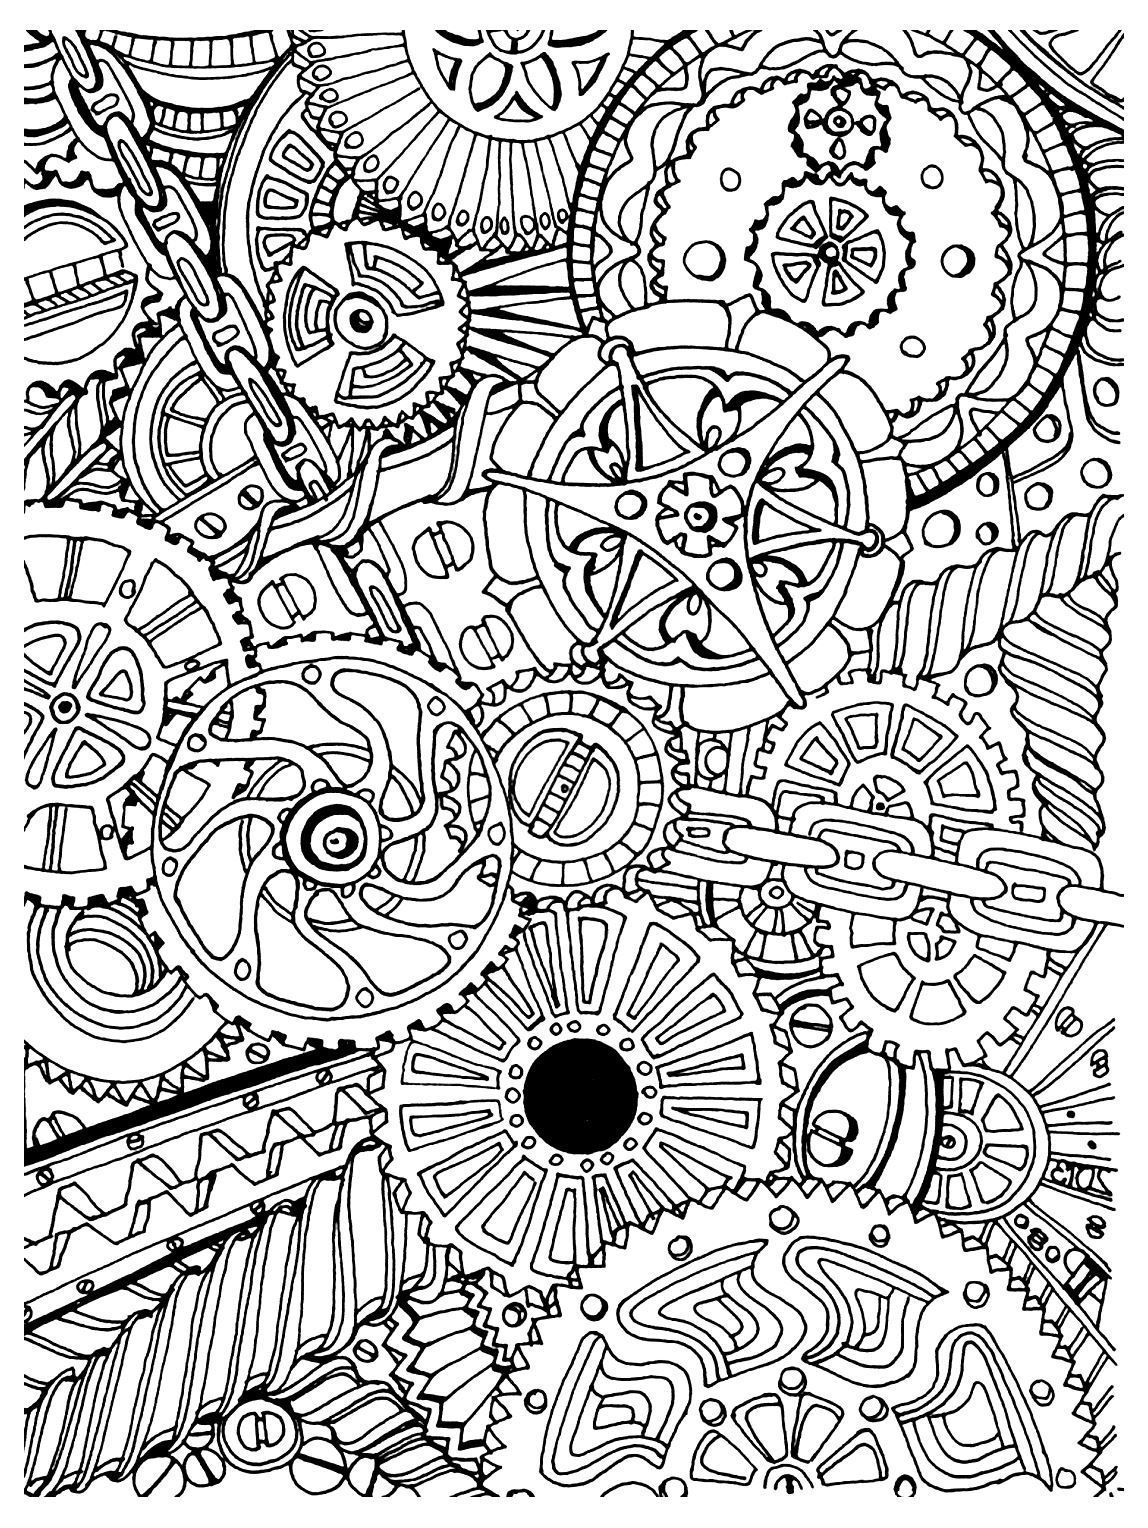 To Print This Free Coloring Page «Coloring-Adult-Zen-Anti-Stress - Free Printable Zen Coloring Pages